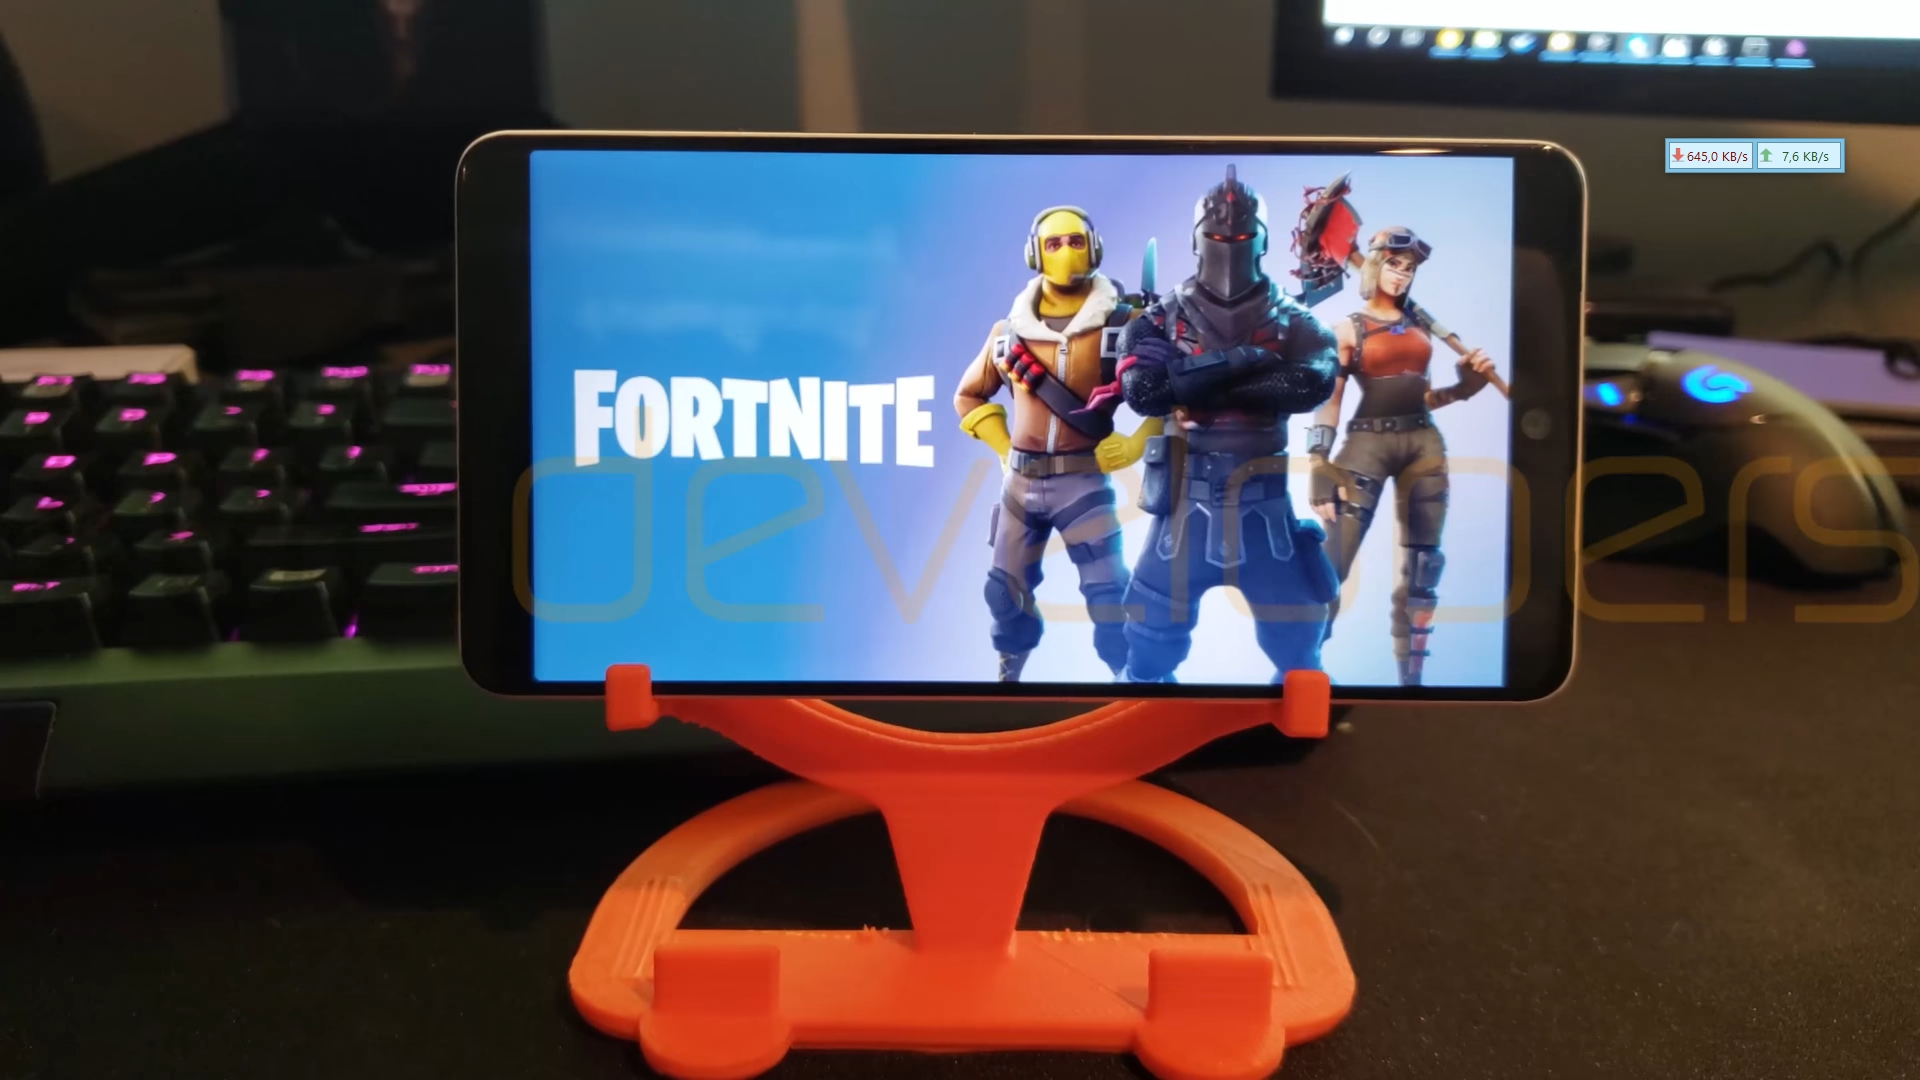 Fortnite para Android no se descargara a través de Google Play